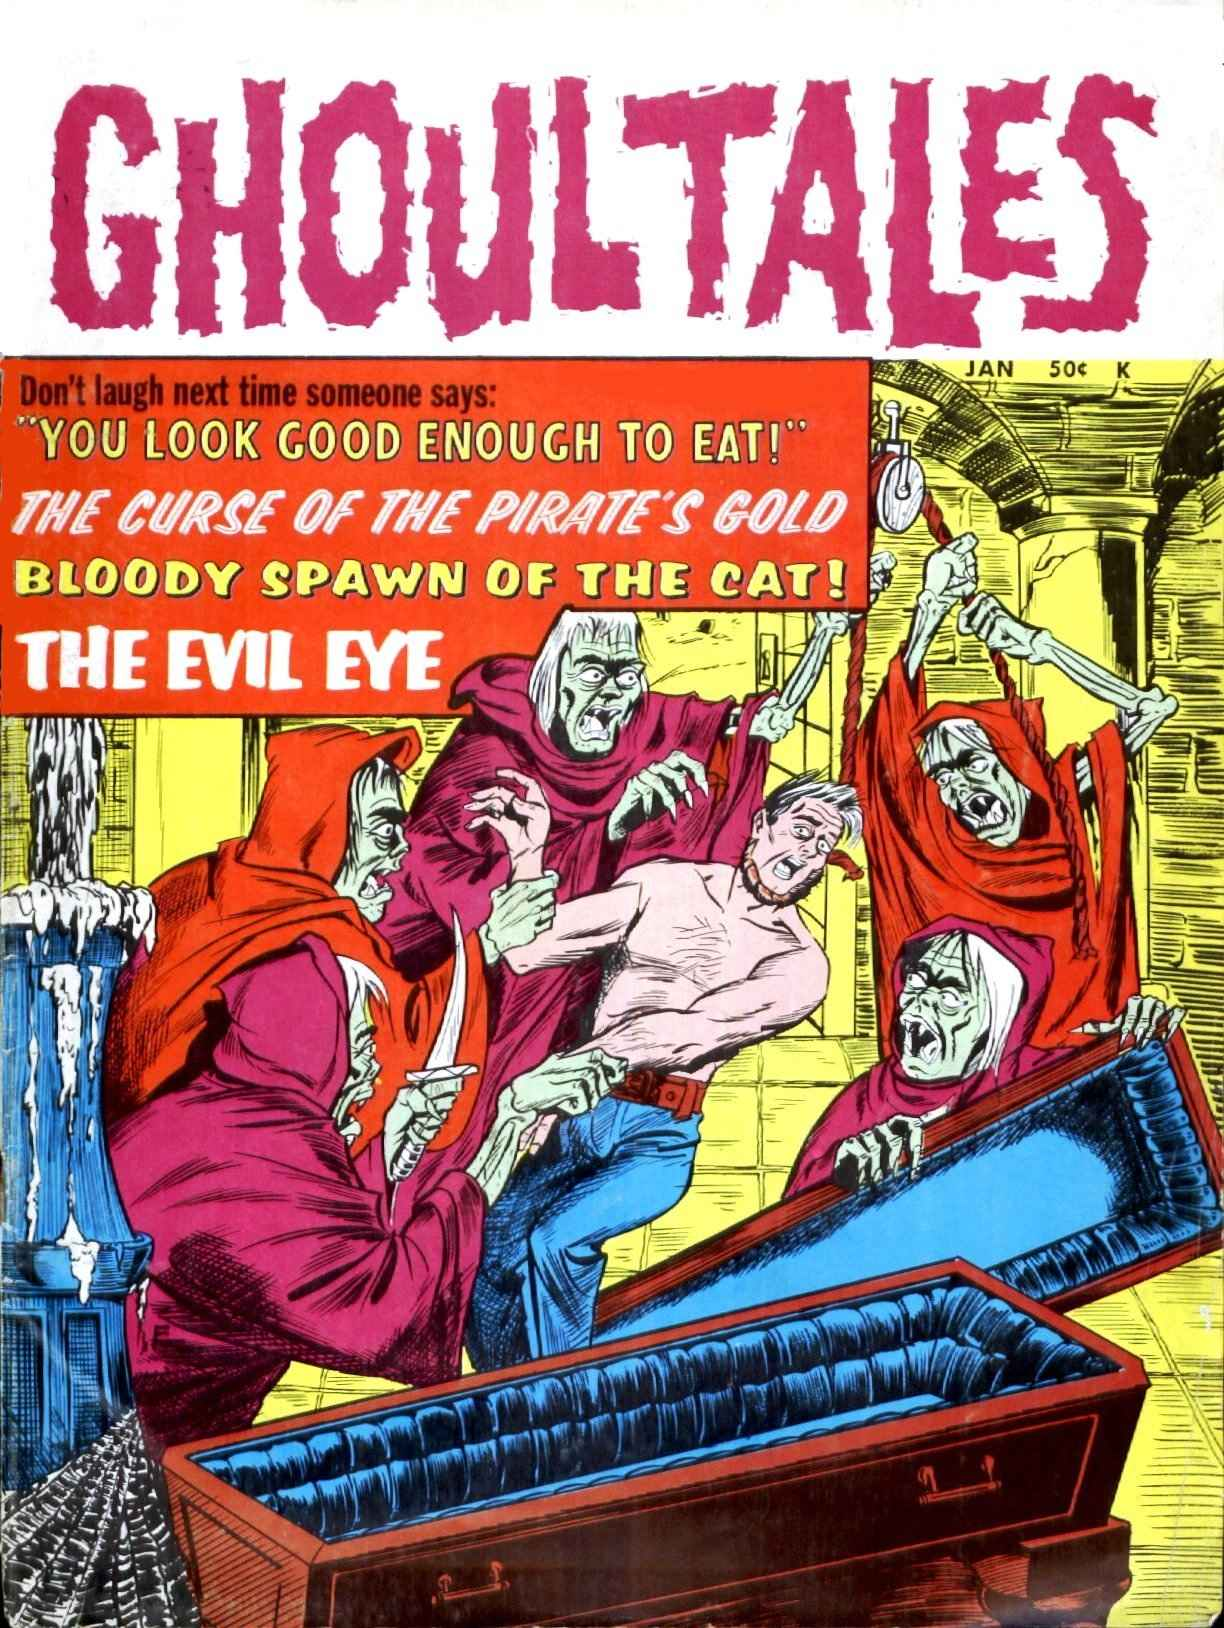 Ghoul Tales - 02, January 1971